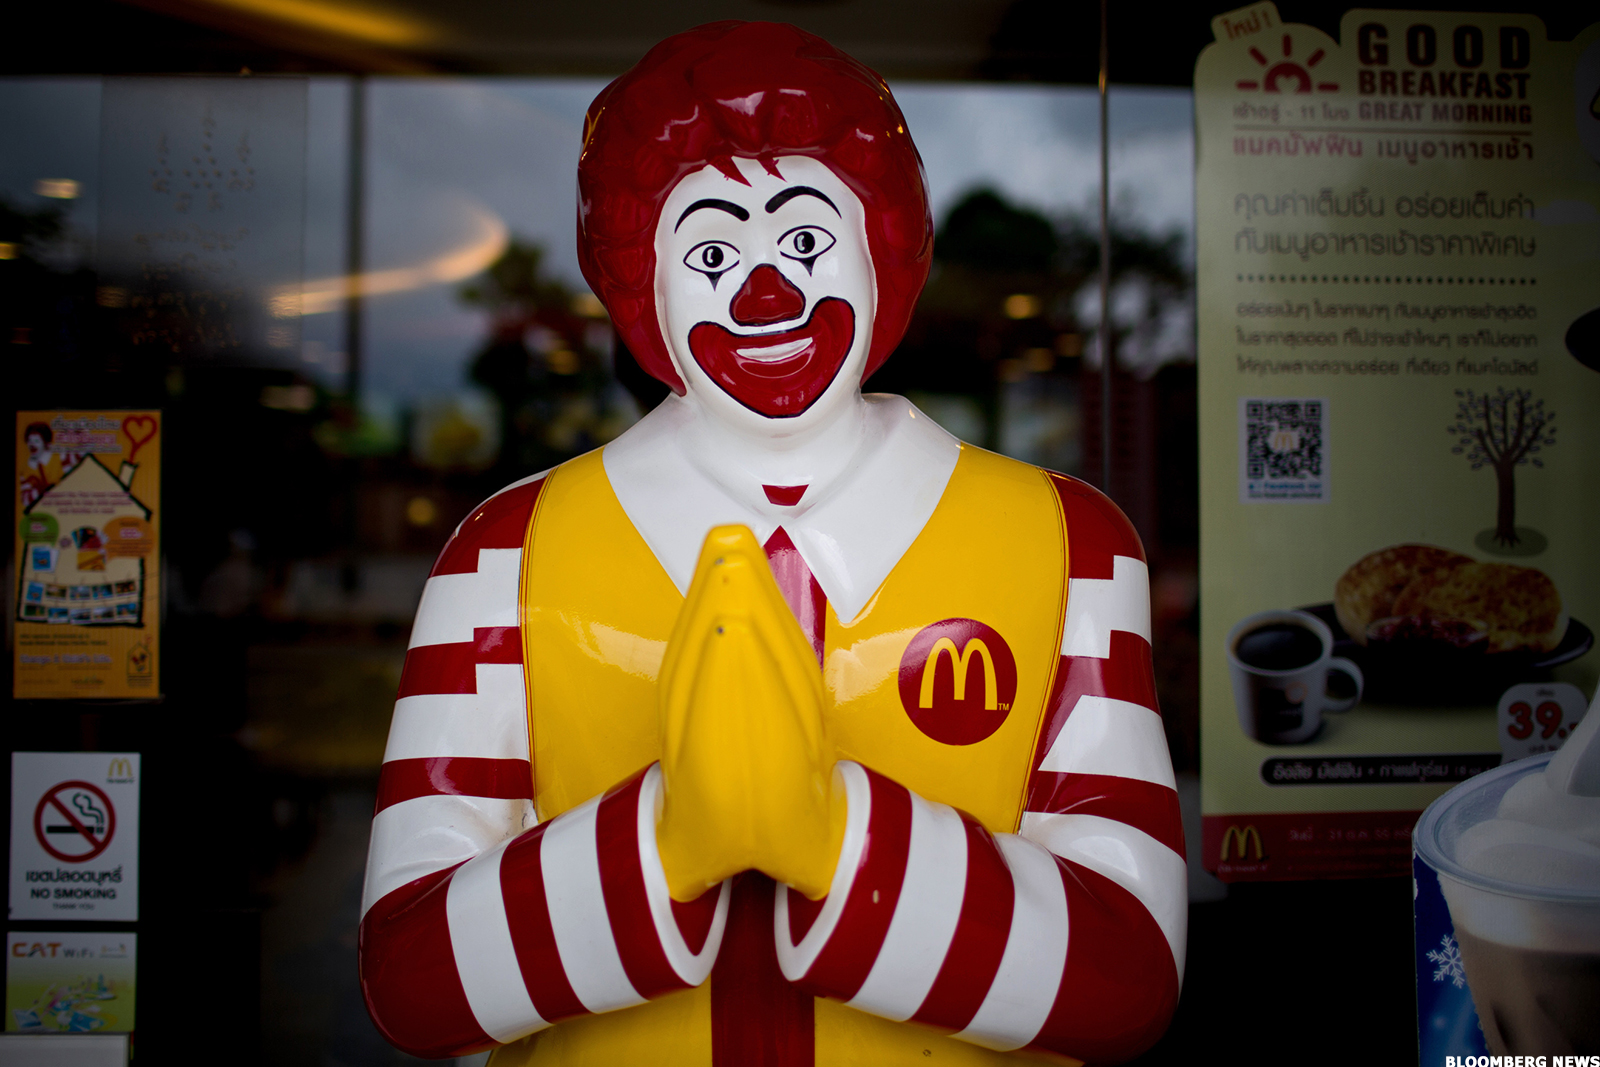 3 Major Changes McDonald's New CEO Is Making to Save the ...